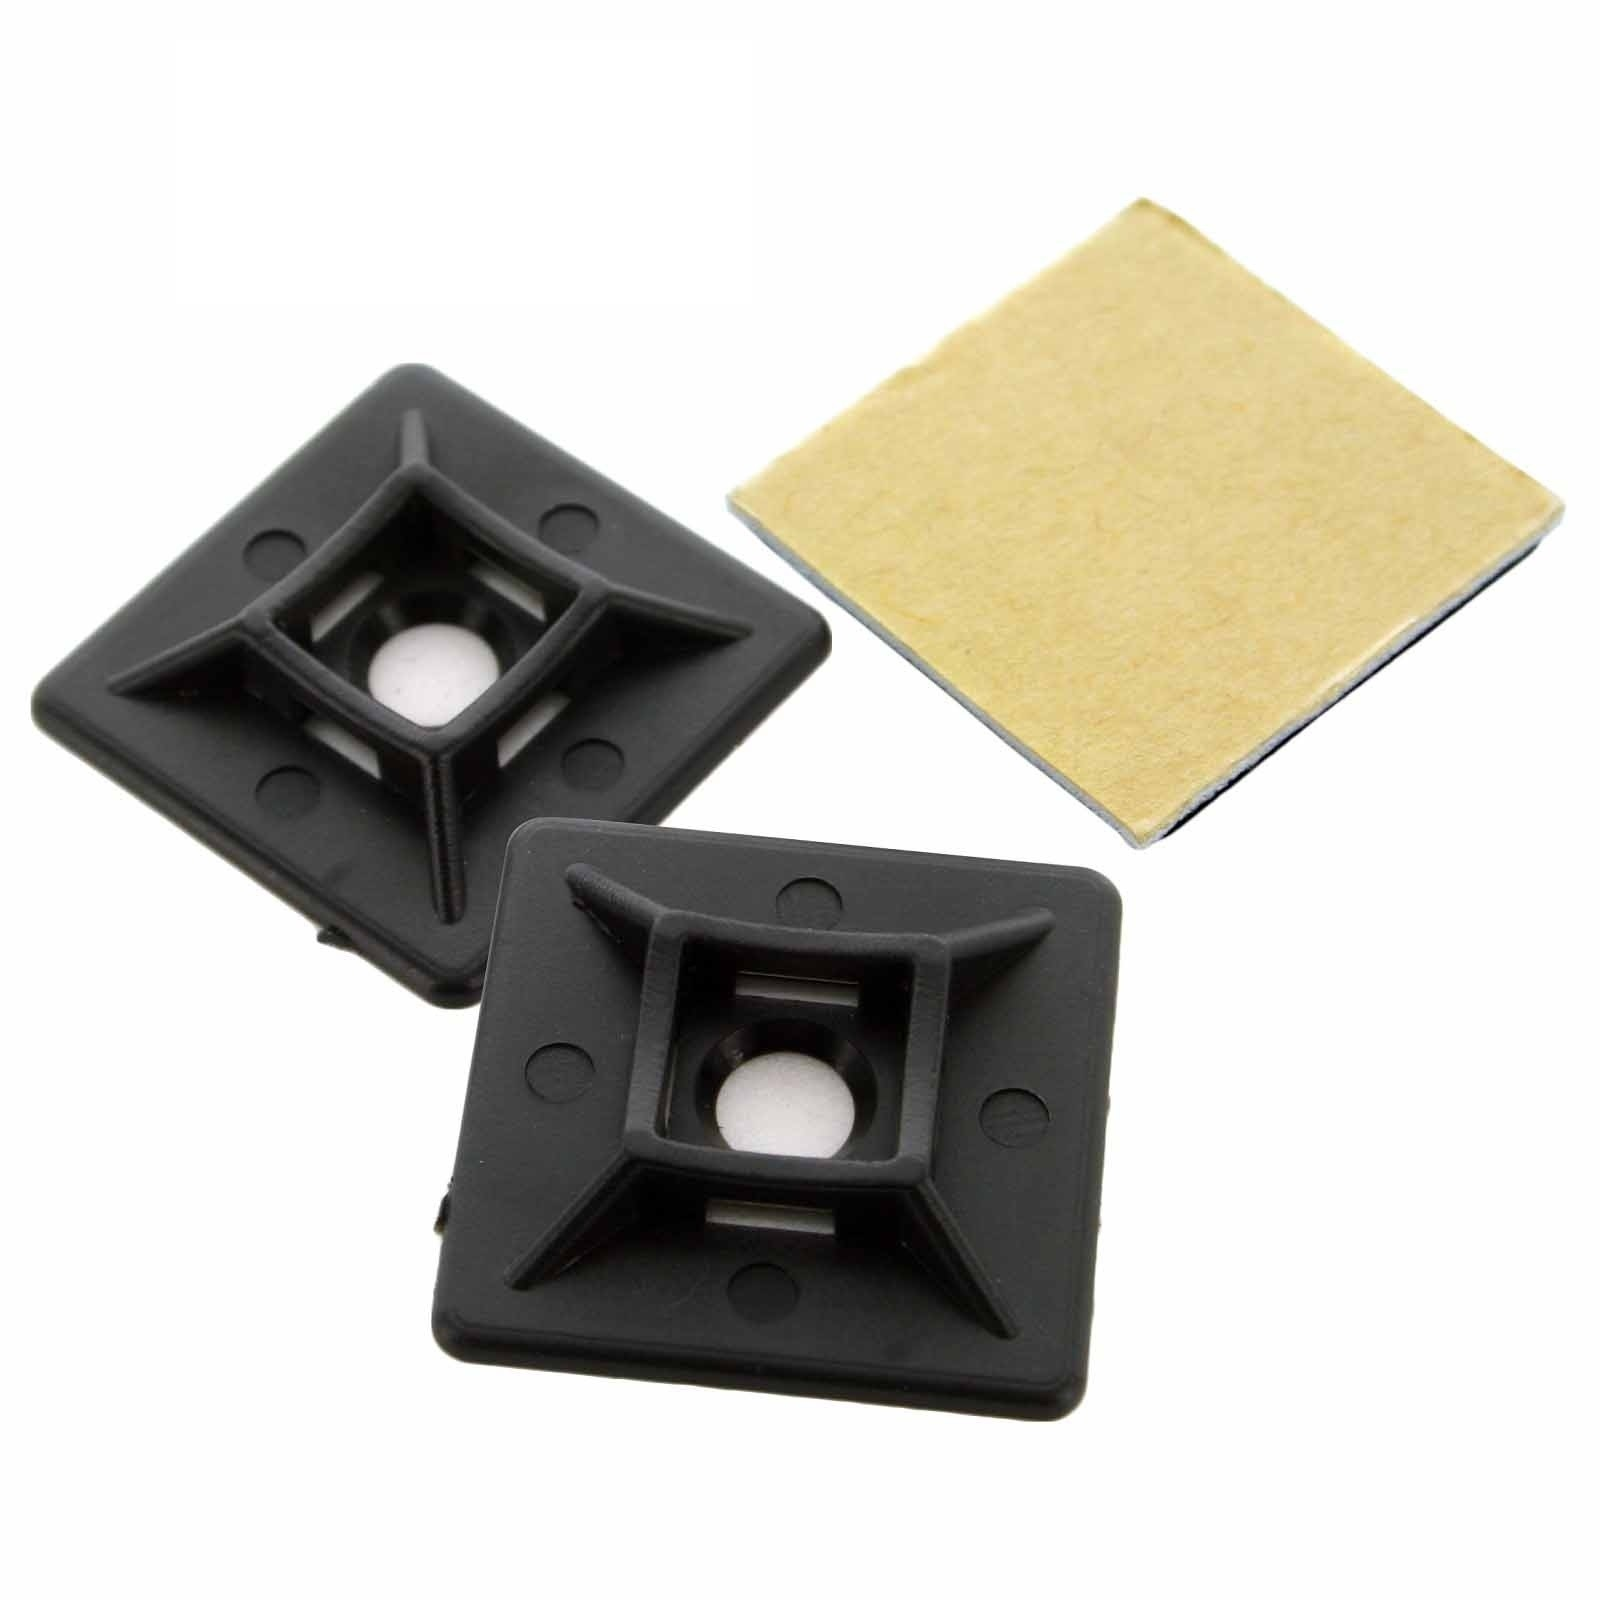 "3/4"" Cable Tie Mount - Adhesive"